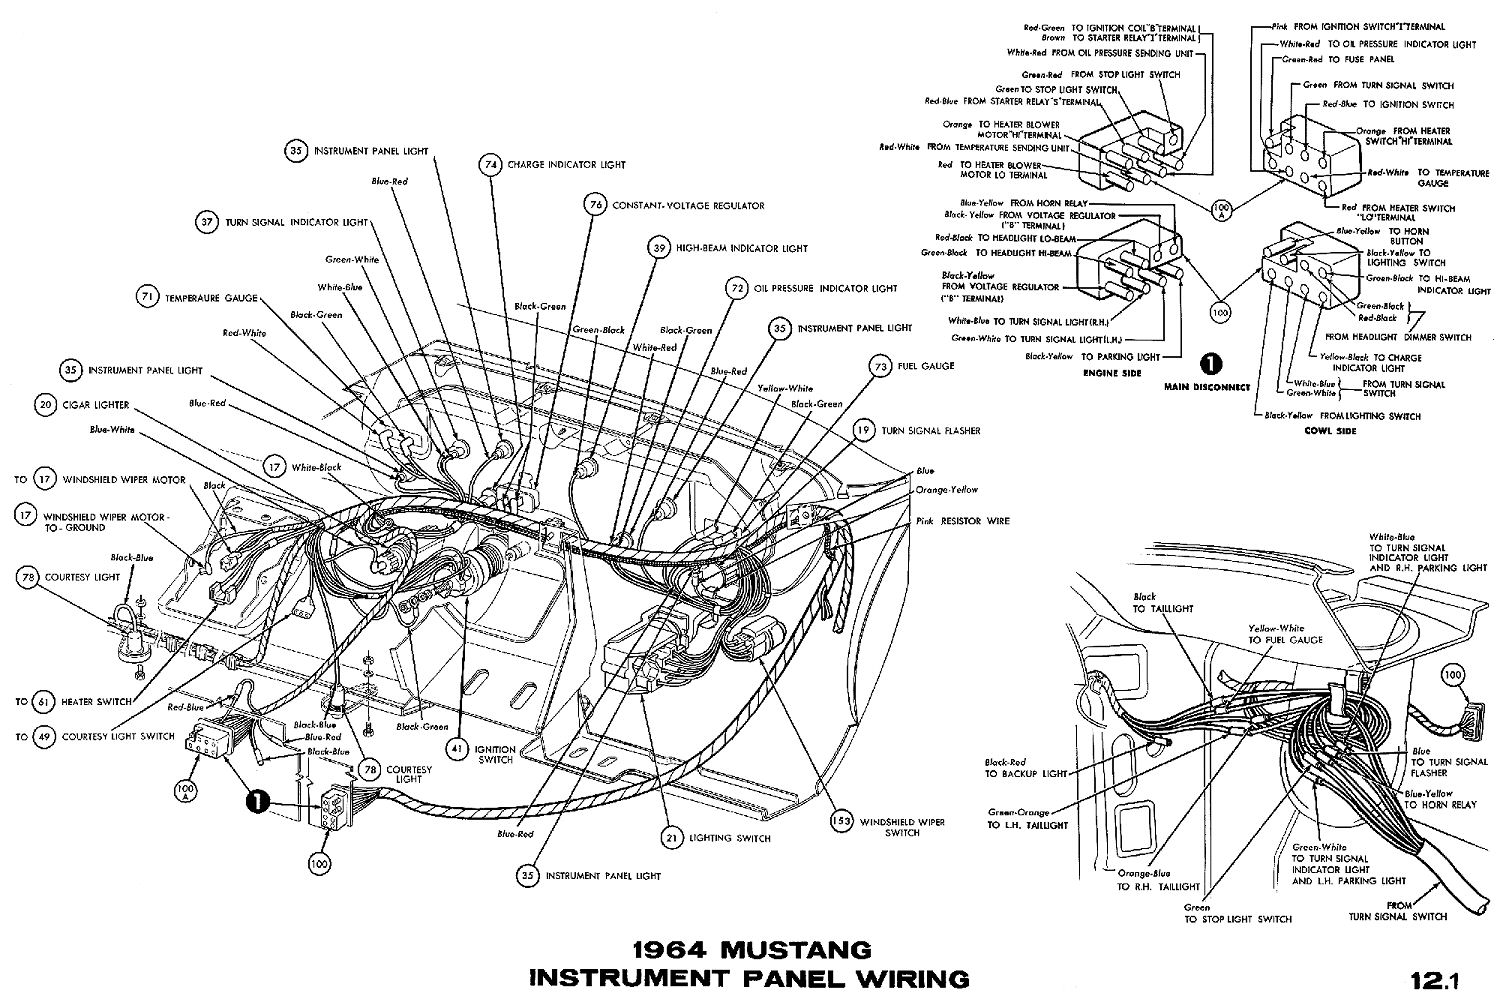 1964b 1969 mustang wiring diagram 2011 mustang wiring diagram \u2022 free 2005 ford mustang instrument cluster wiring diagram at virtualis.co